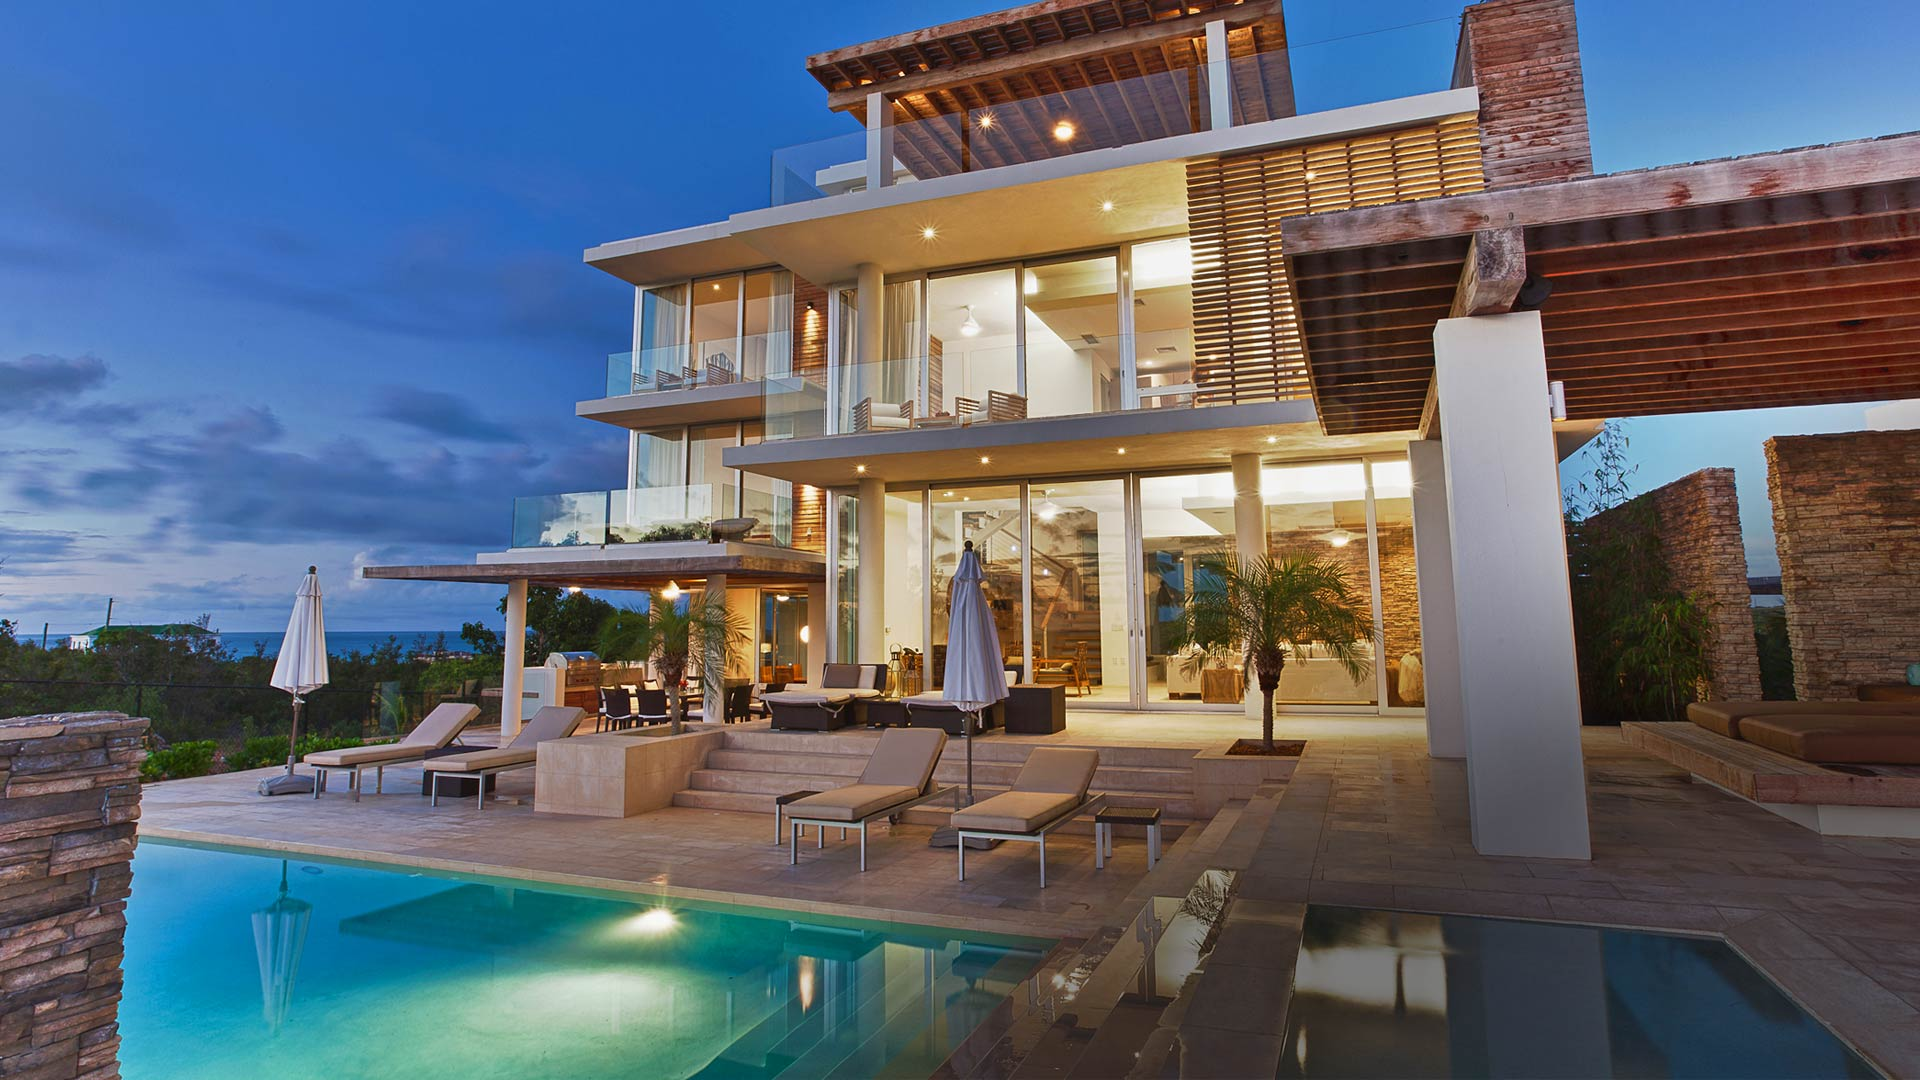 The world top luxury villas luxury stuff for Luxury accommodation worldwide